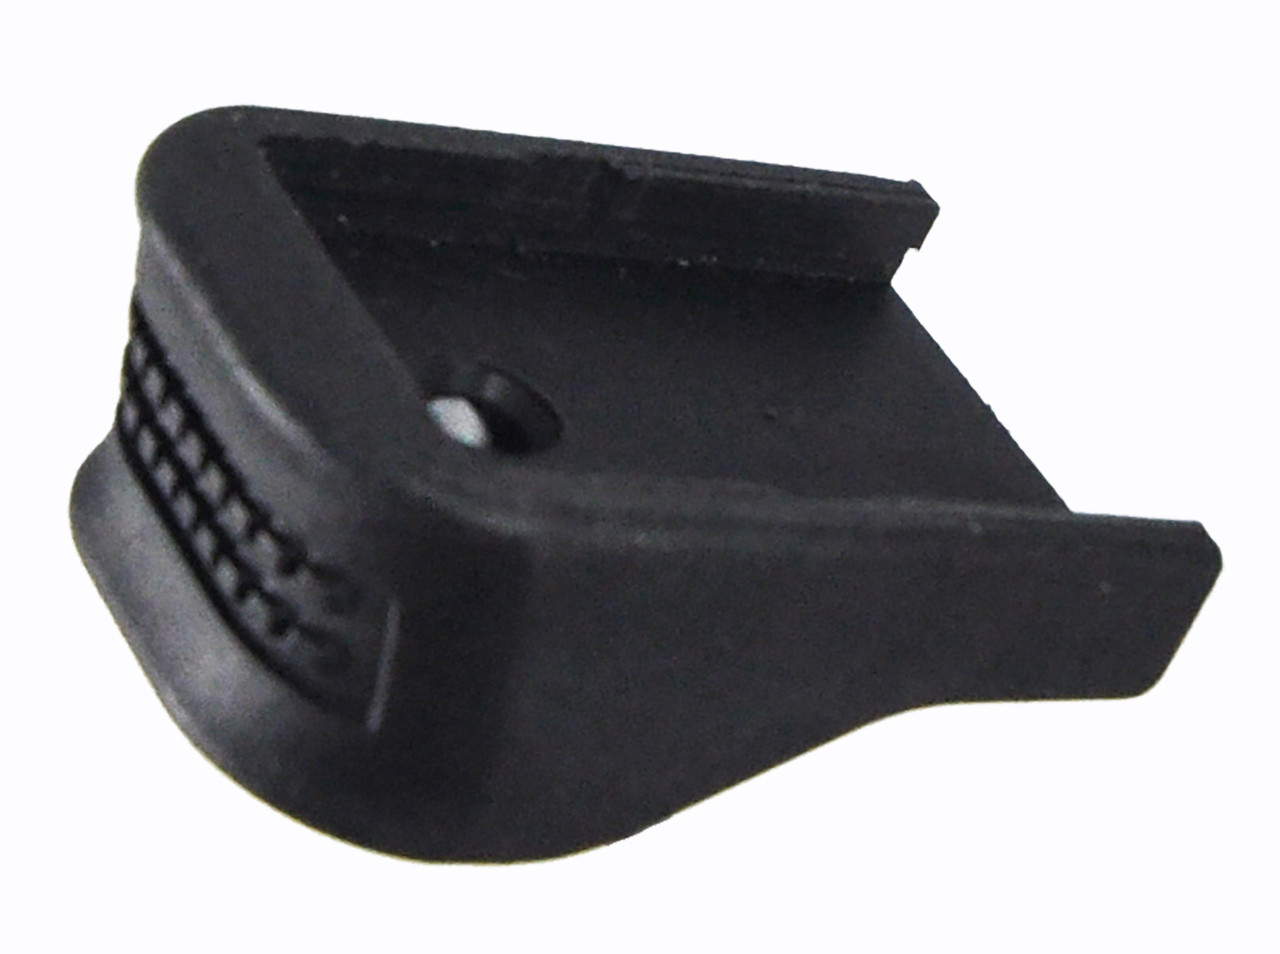 """.75"""" Grip Extension Fits Glock 17 18 19 22 23 24 25 31 32 34 35 37 38"""